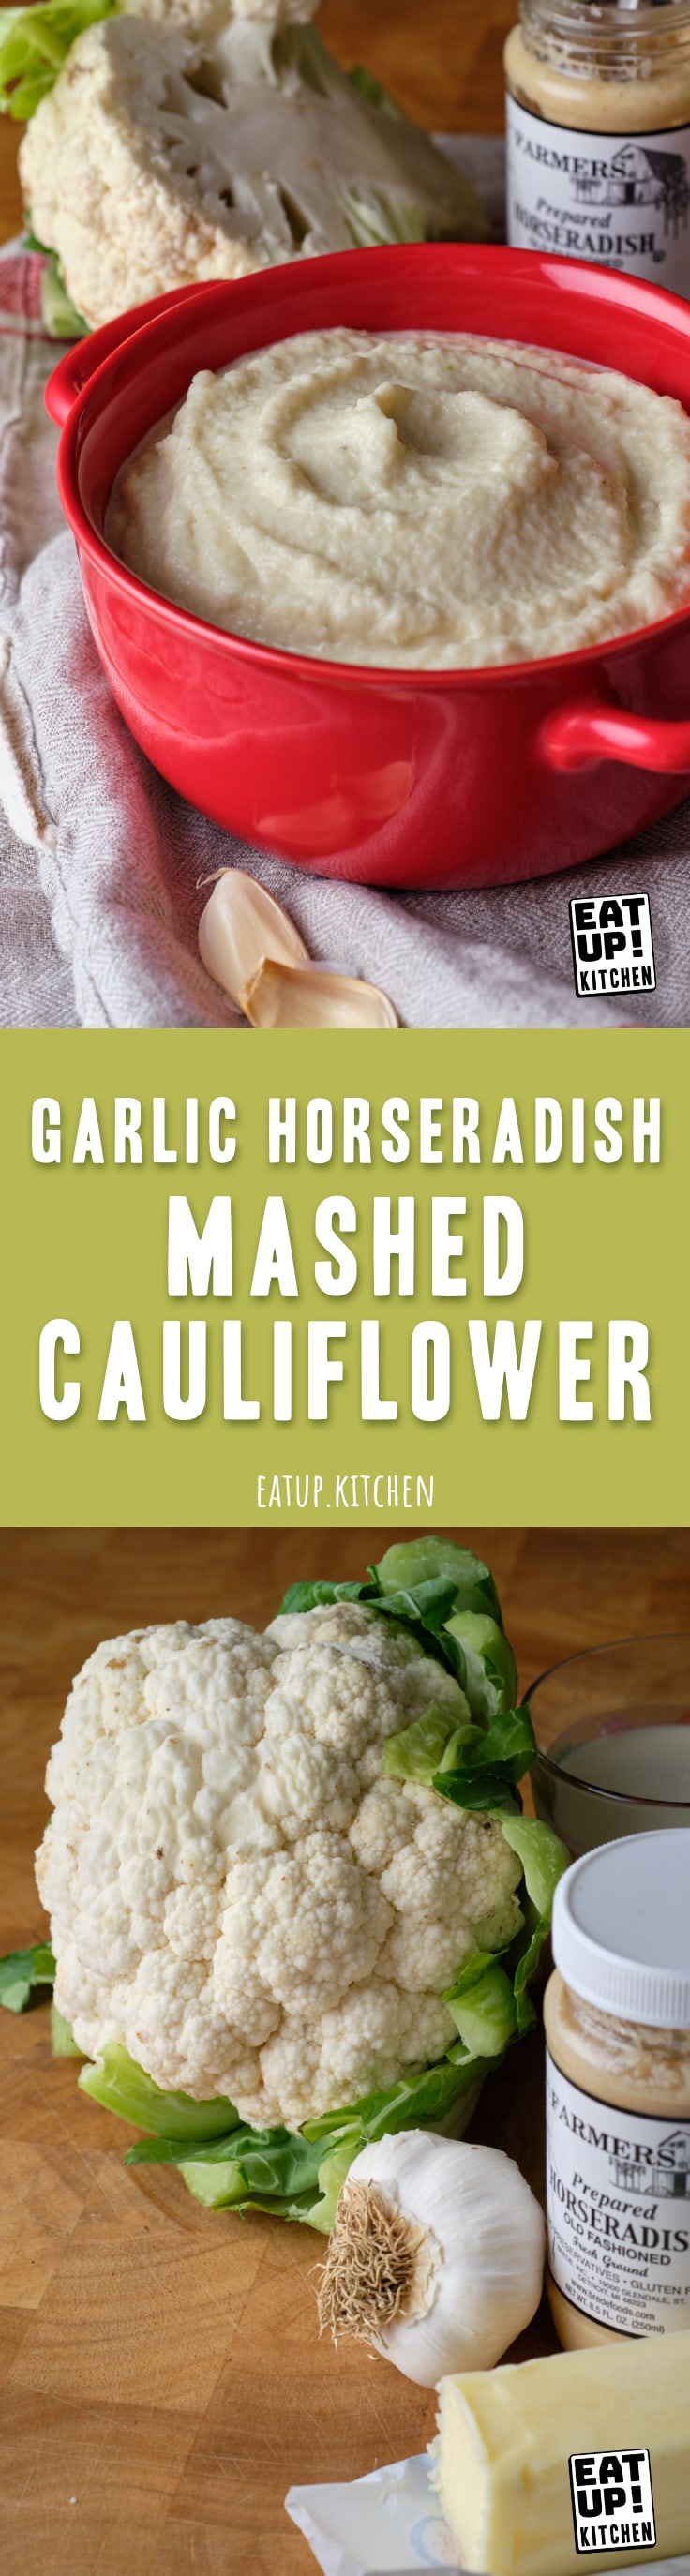 Garlic Horseradish Mashed Cauliflower